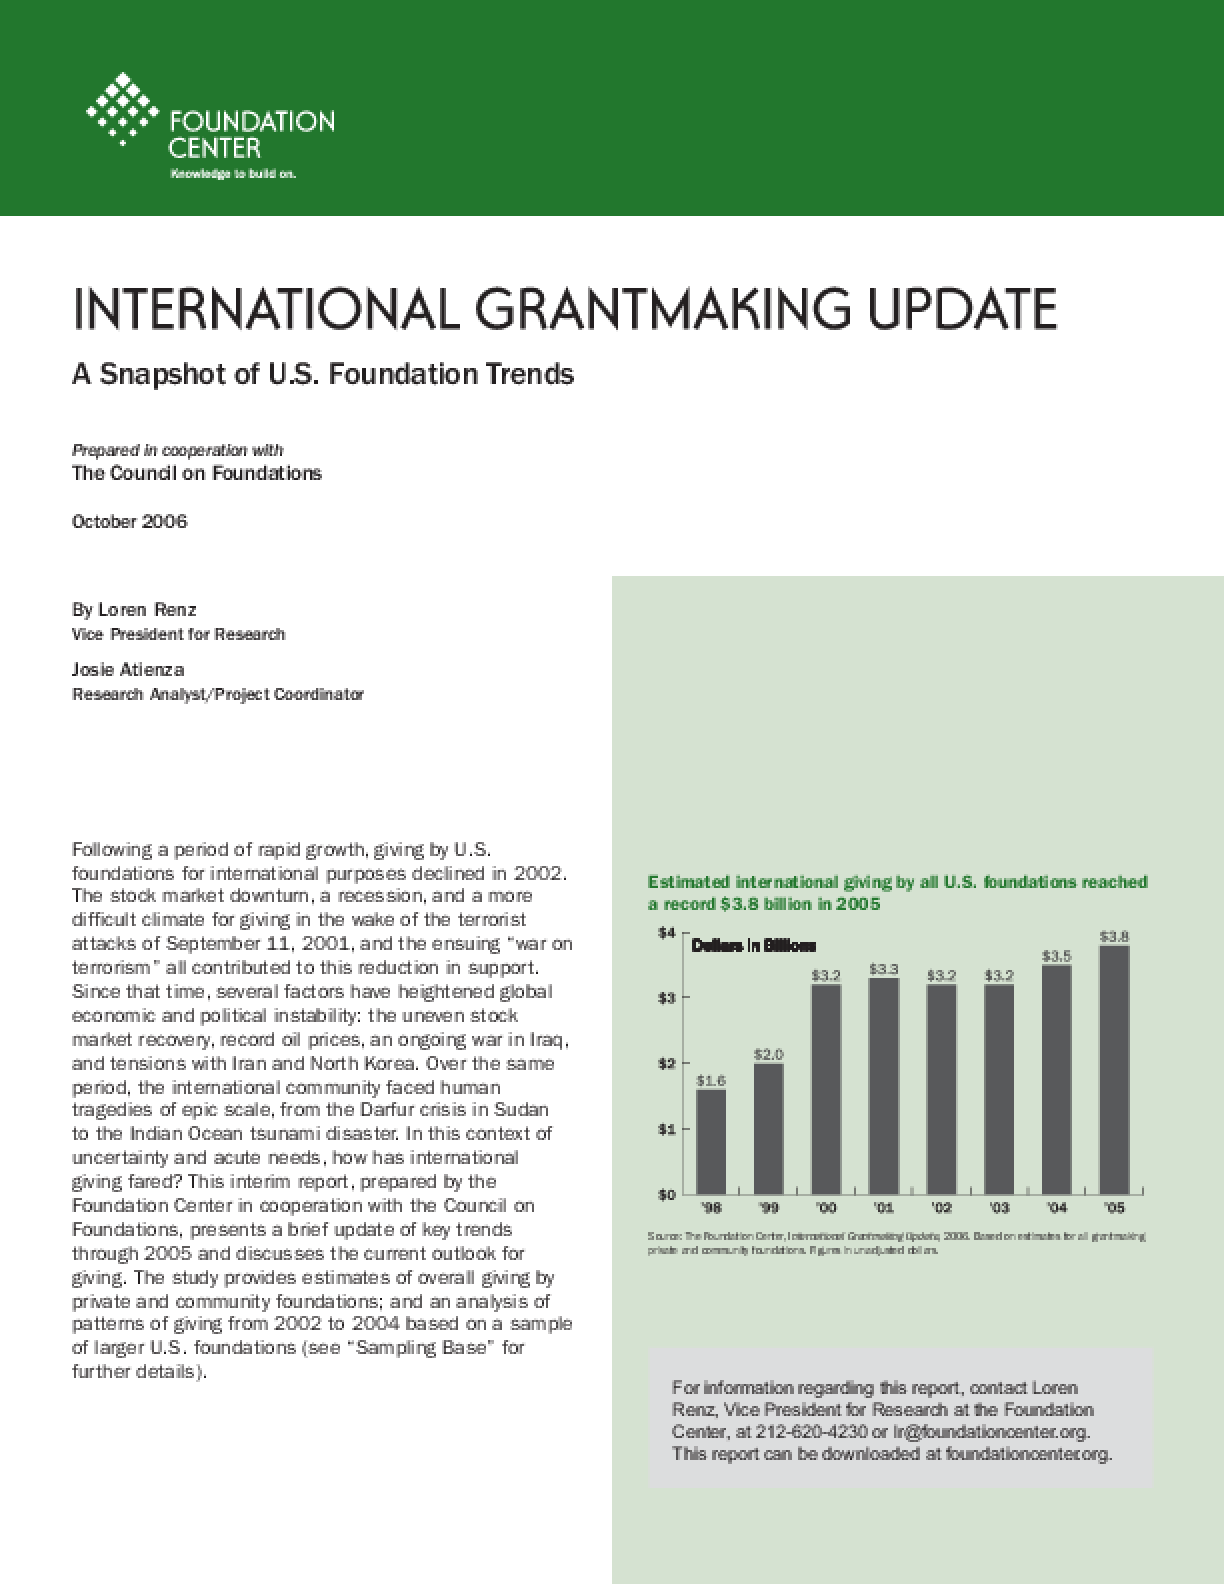 International Grantmaking Update: A Snapshot of U.S. Foundation Trends, 2006